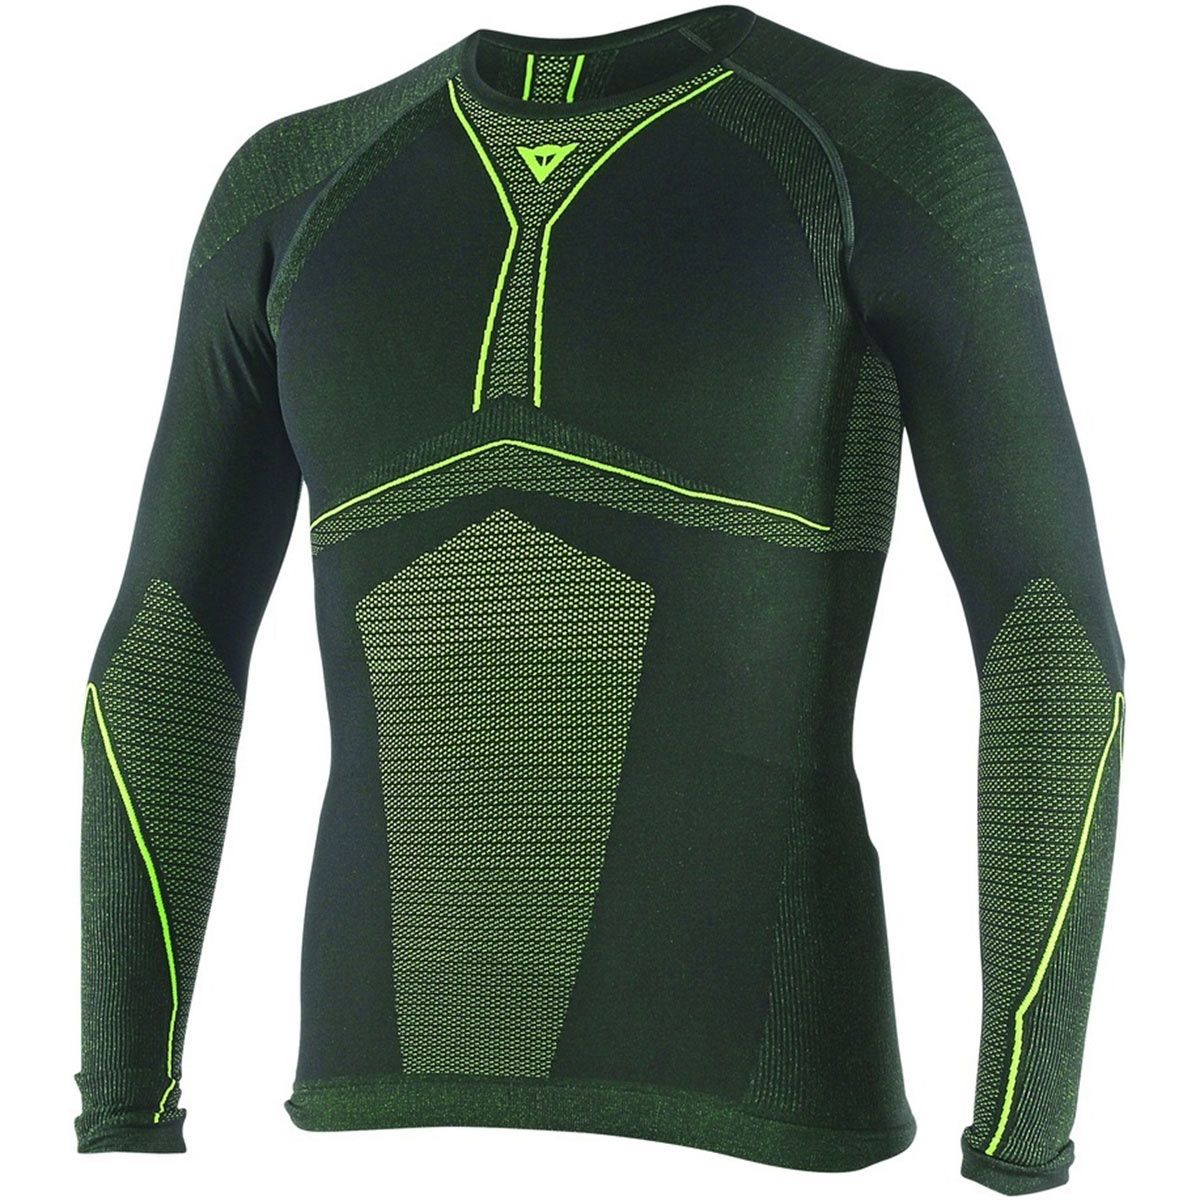 Dainese D-core Armor Tee Ls Fluo Yellow